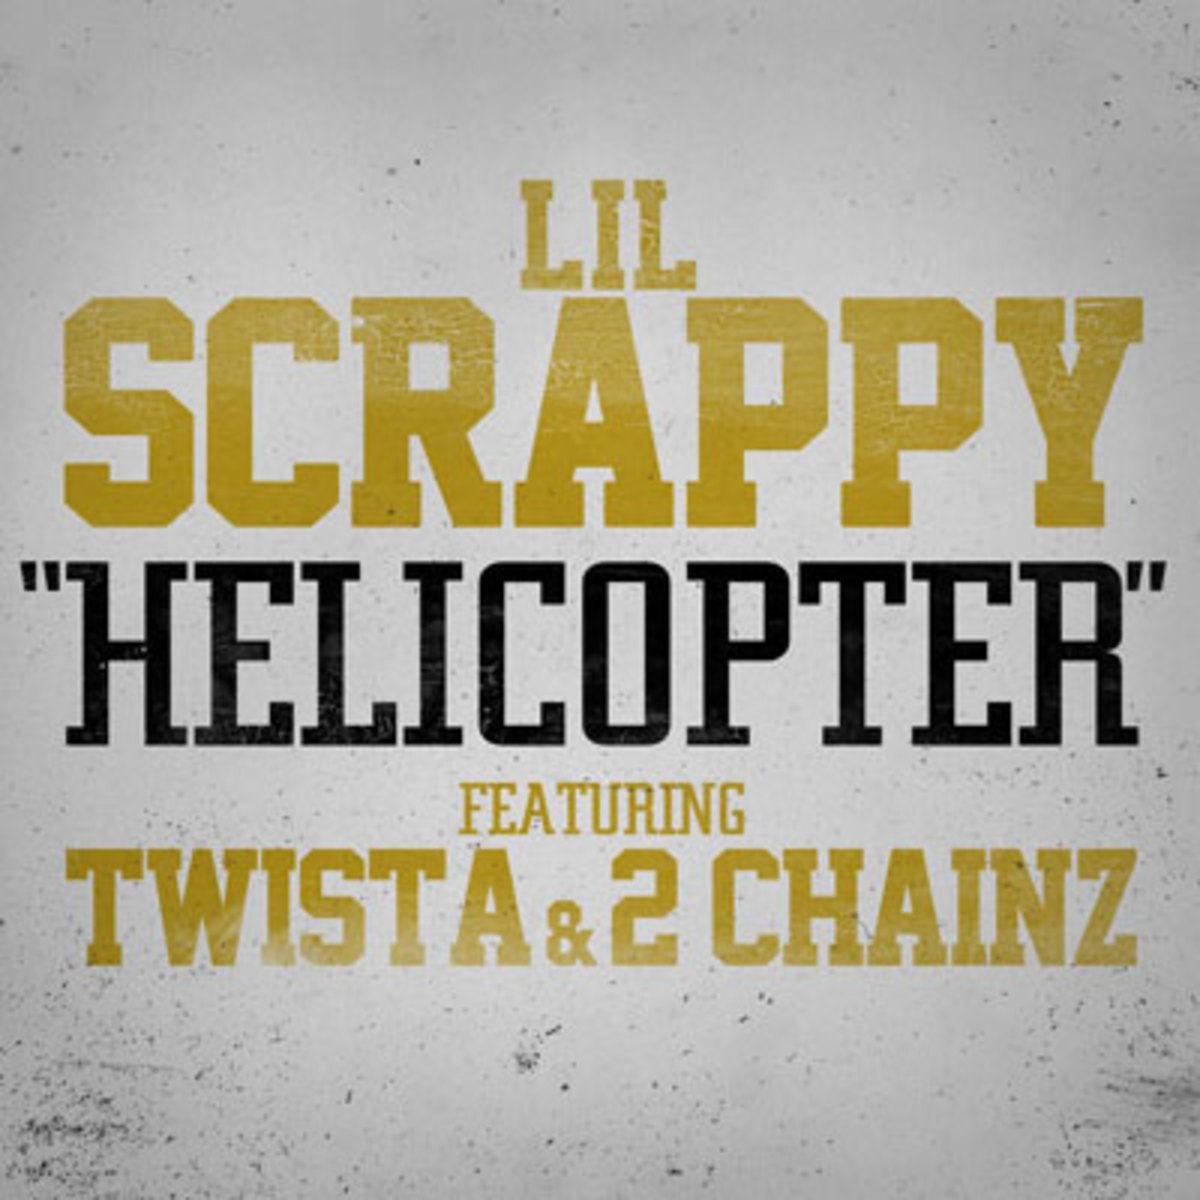 lilscrappy-helicopter.jpg